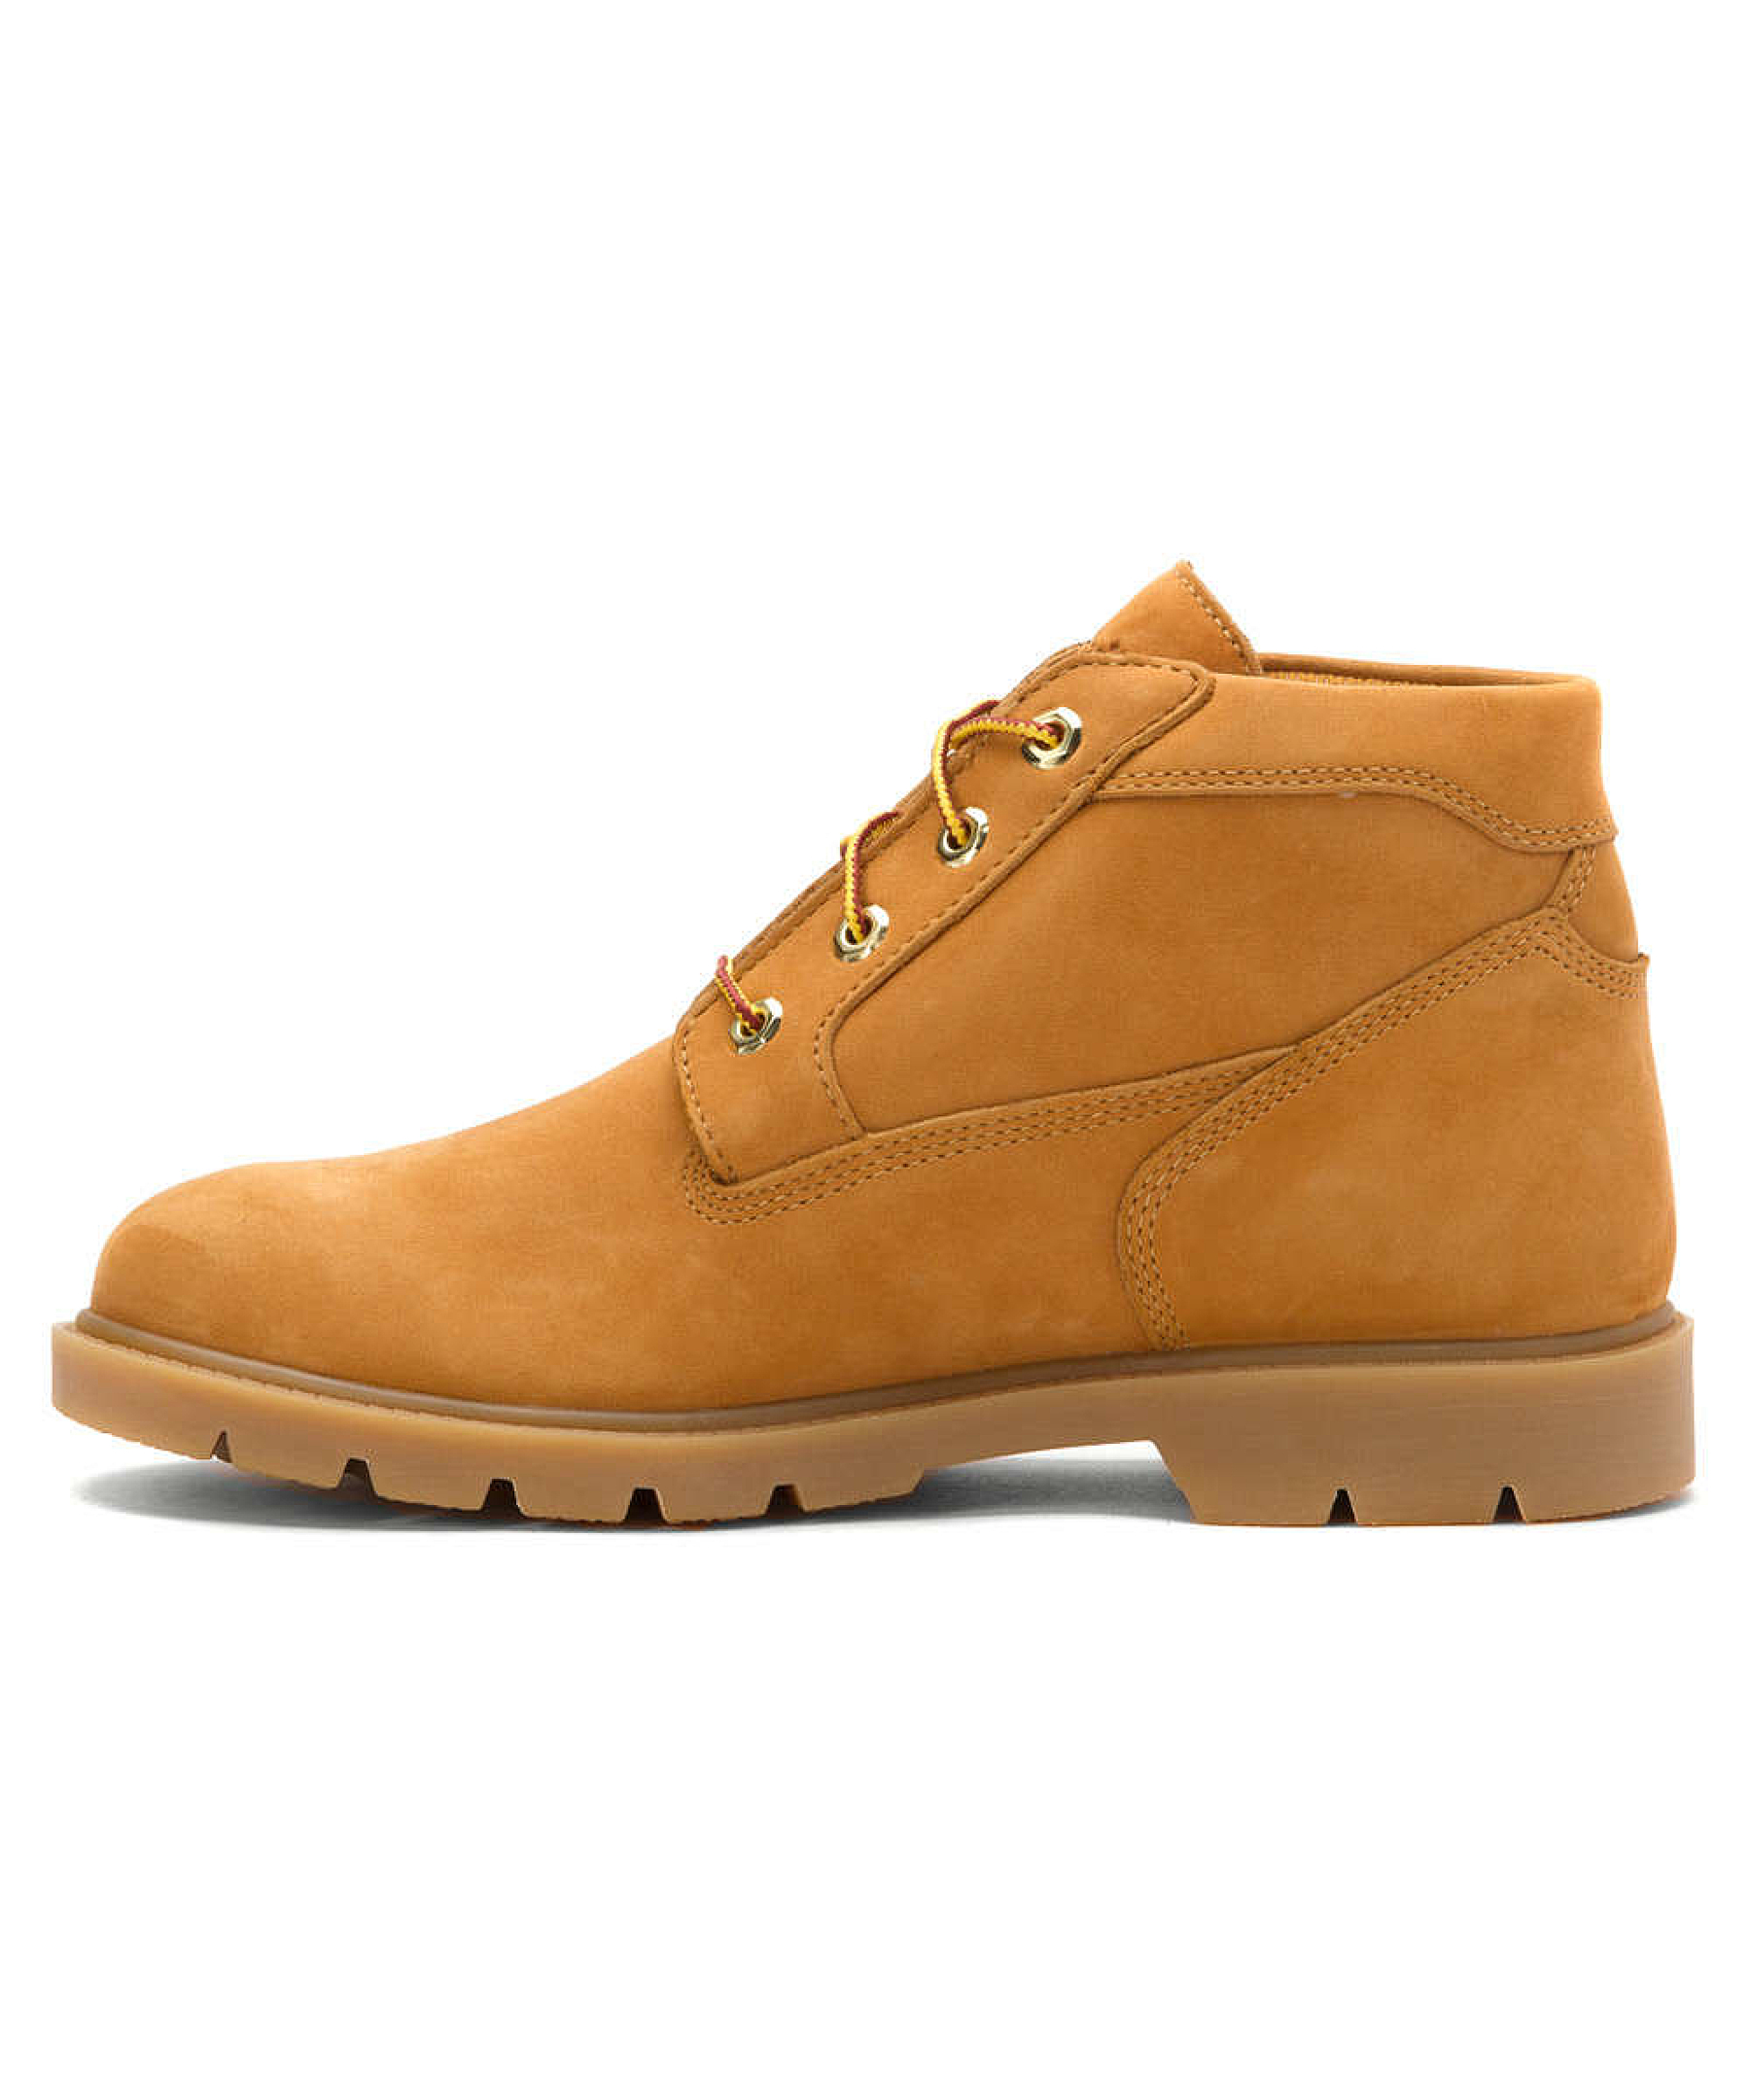 timberland s basic chukka boots in orange for lyst